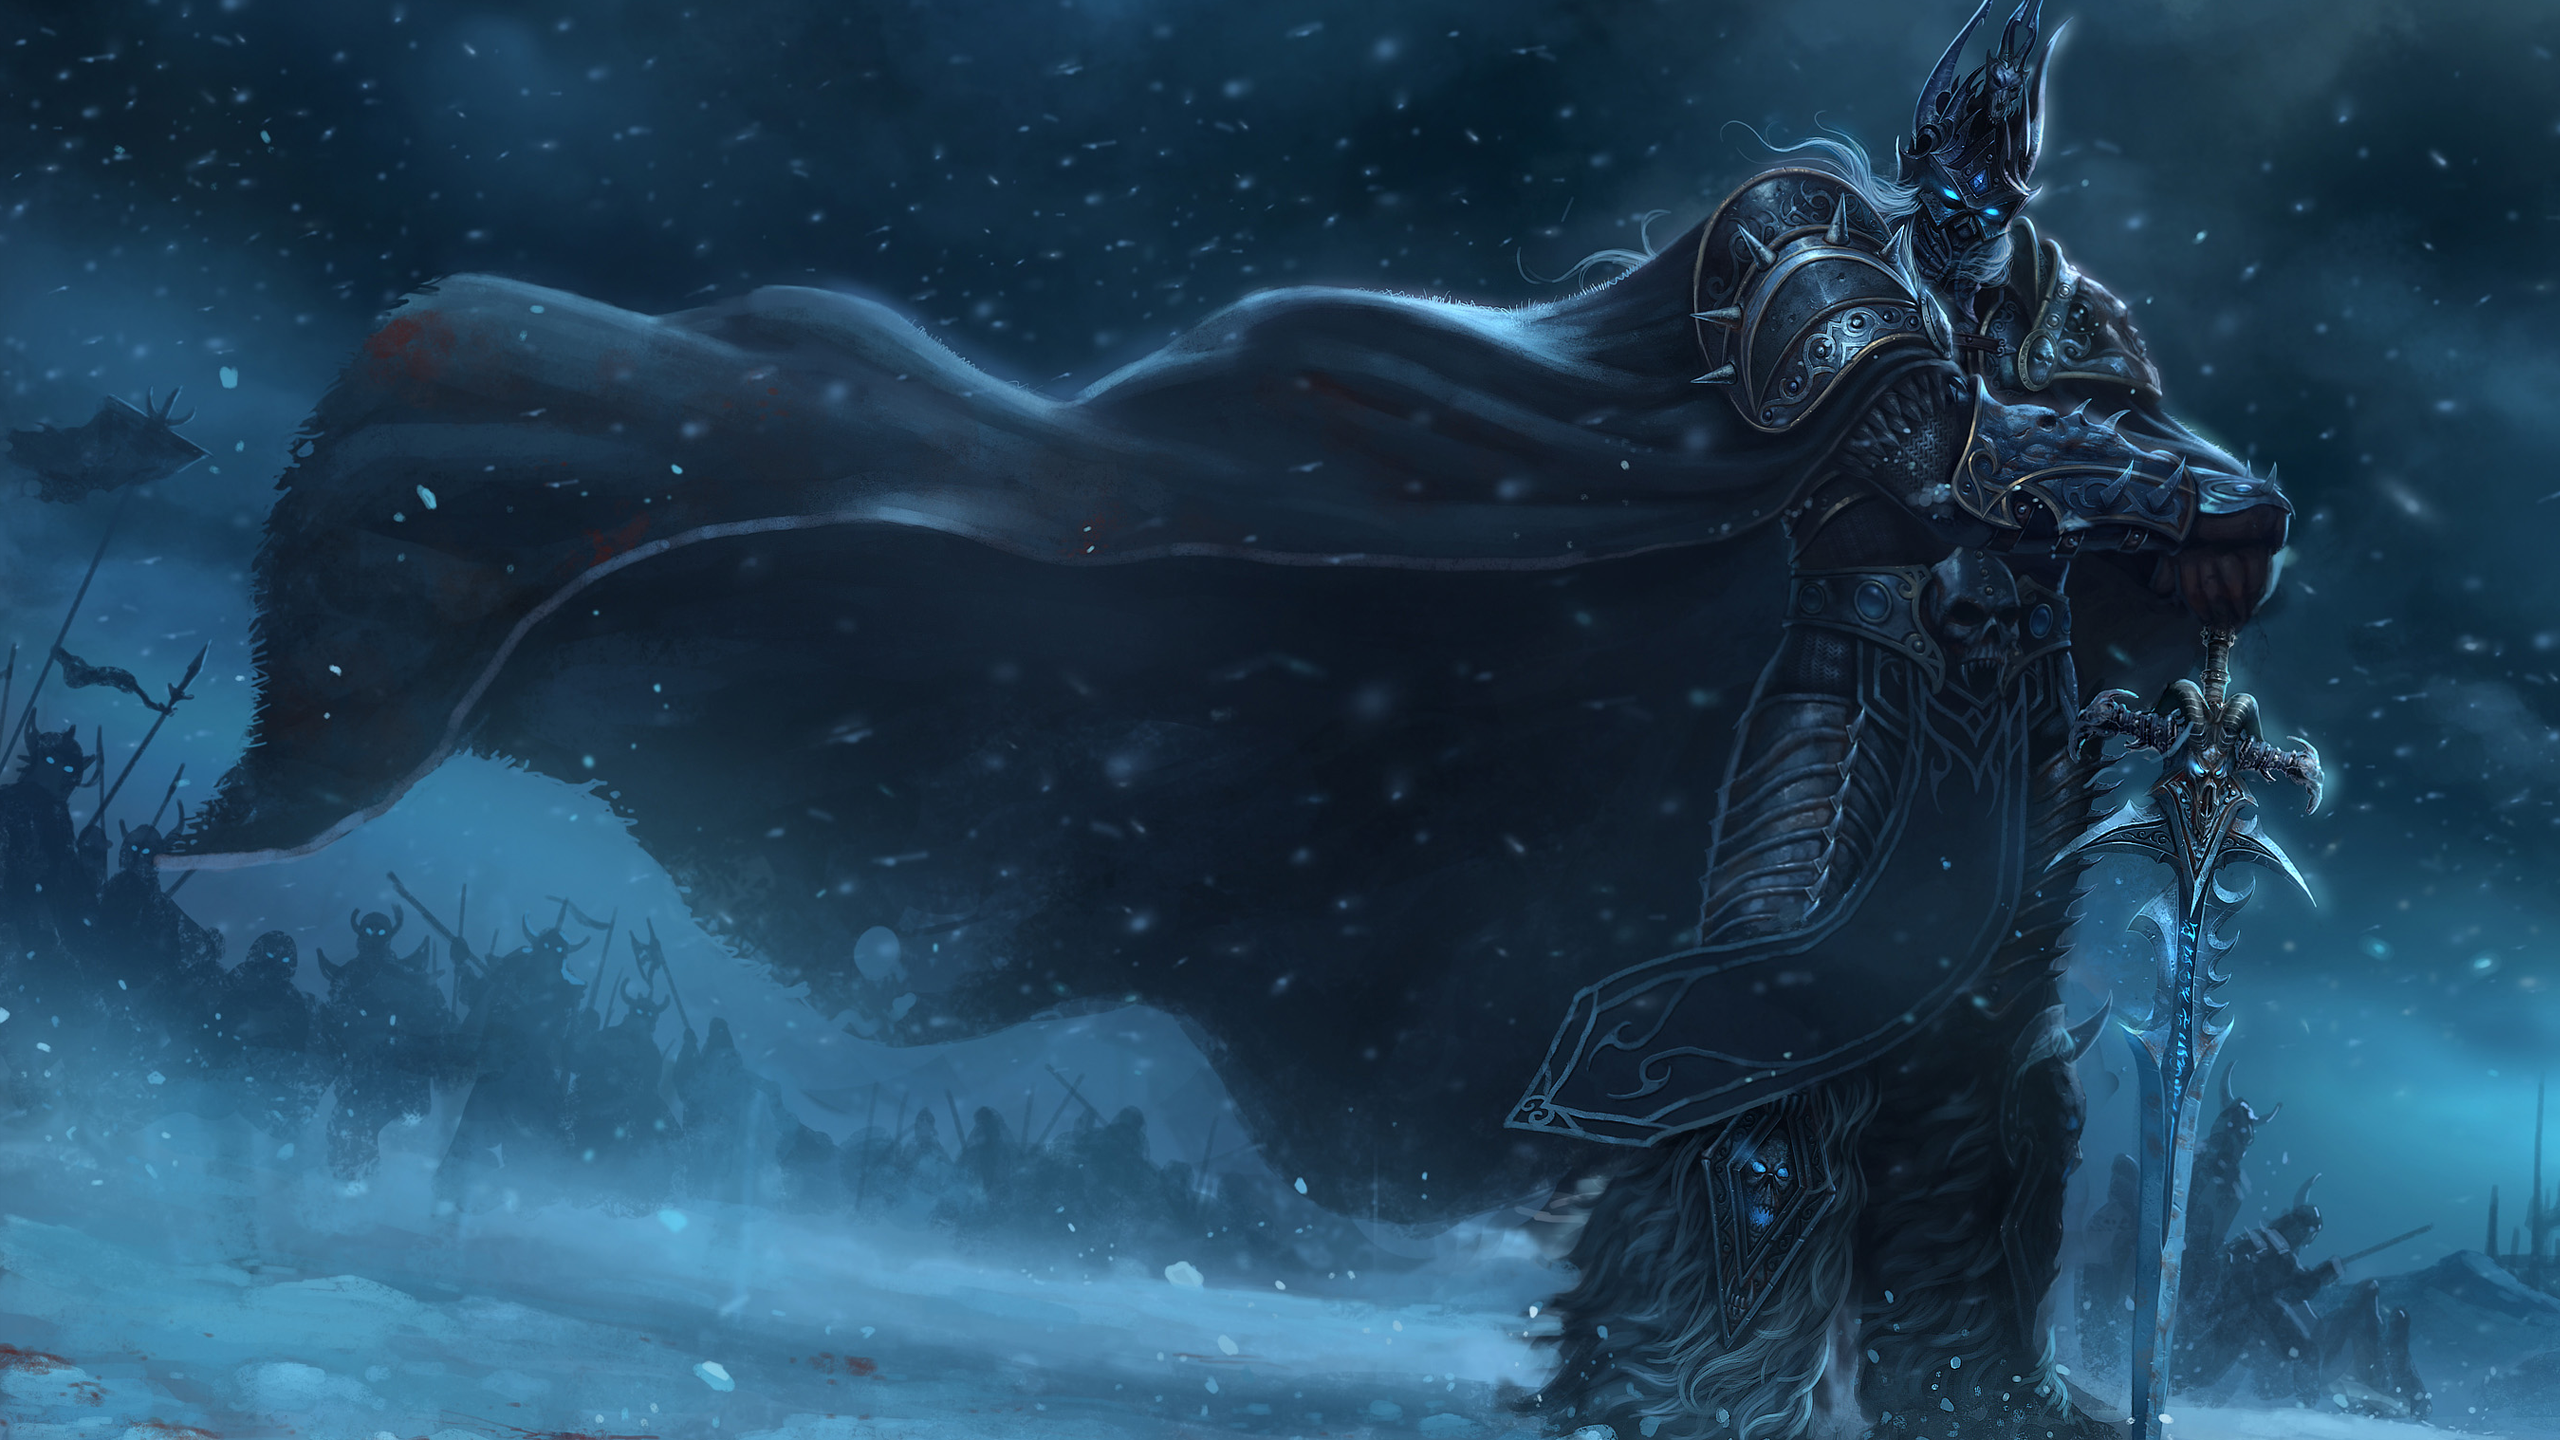 World Of Warcraft Wallpapers High Quality Wallpapers Backgrounds Images Art Photos World Of Warcraft Wallpaper Lich King World Of Warcraft